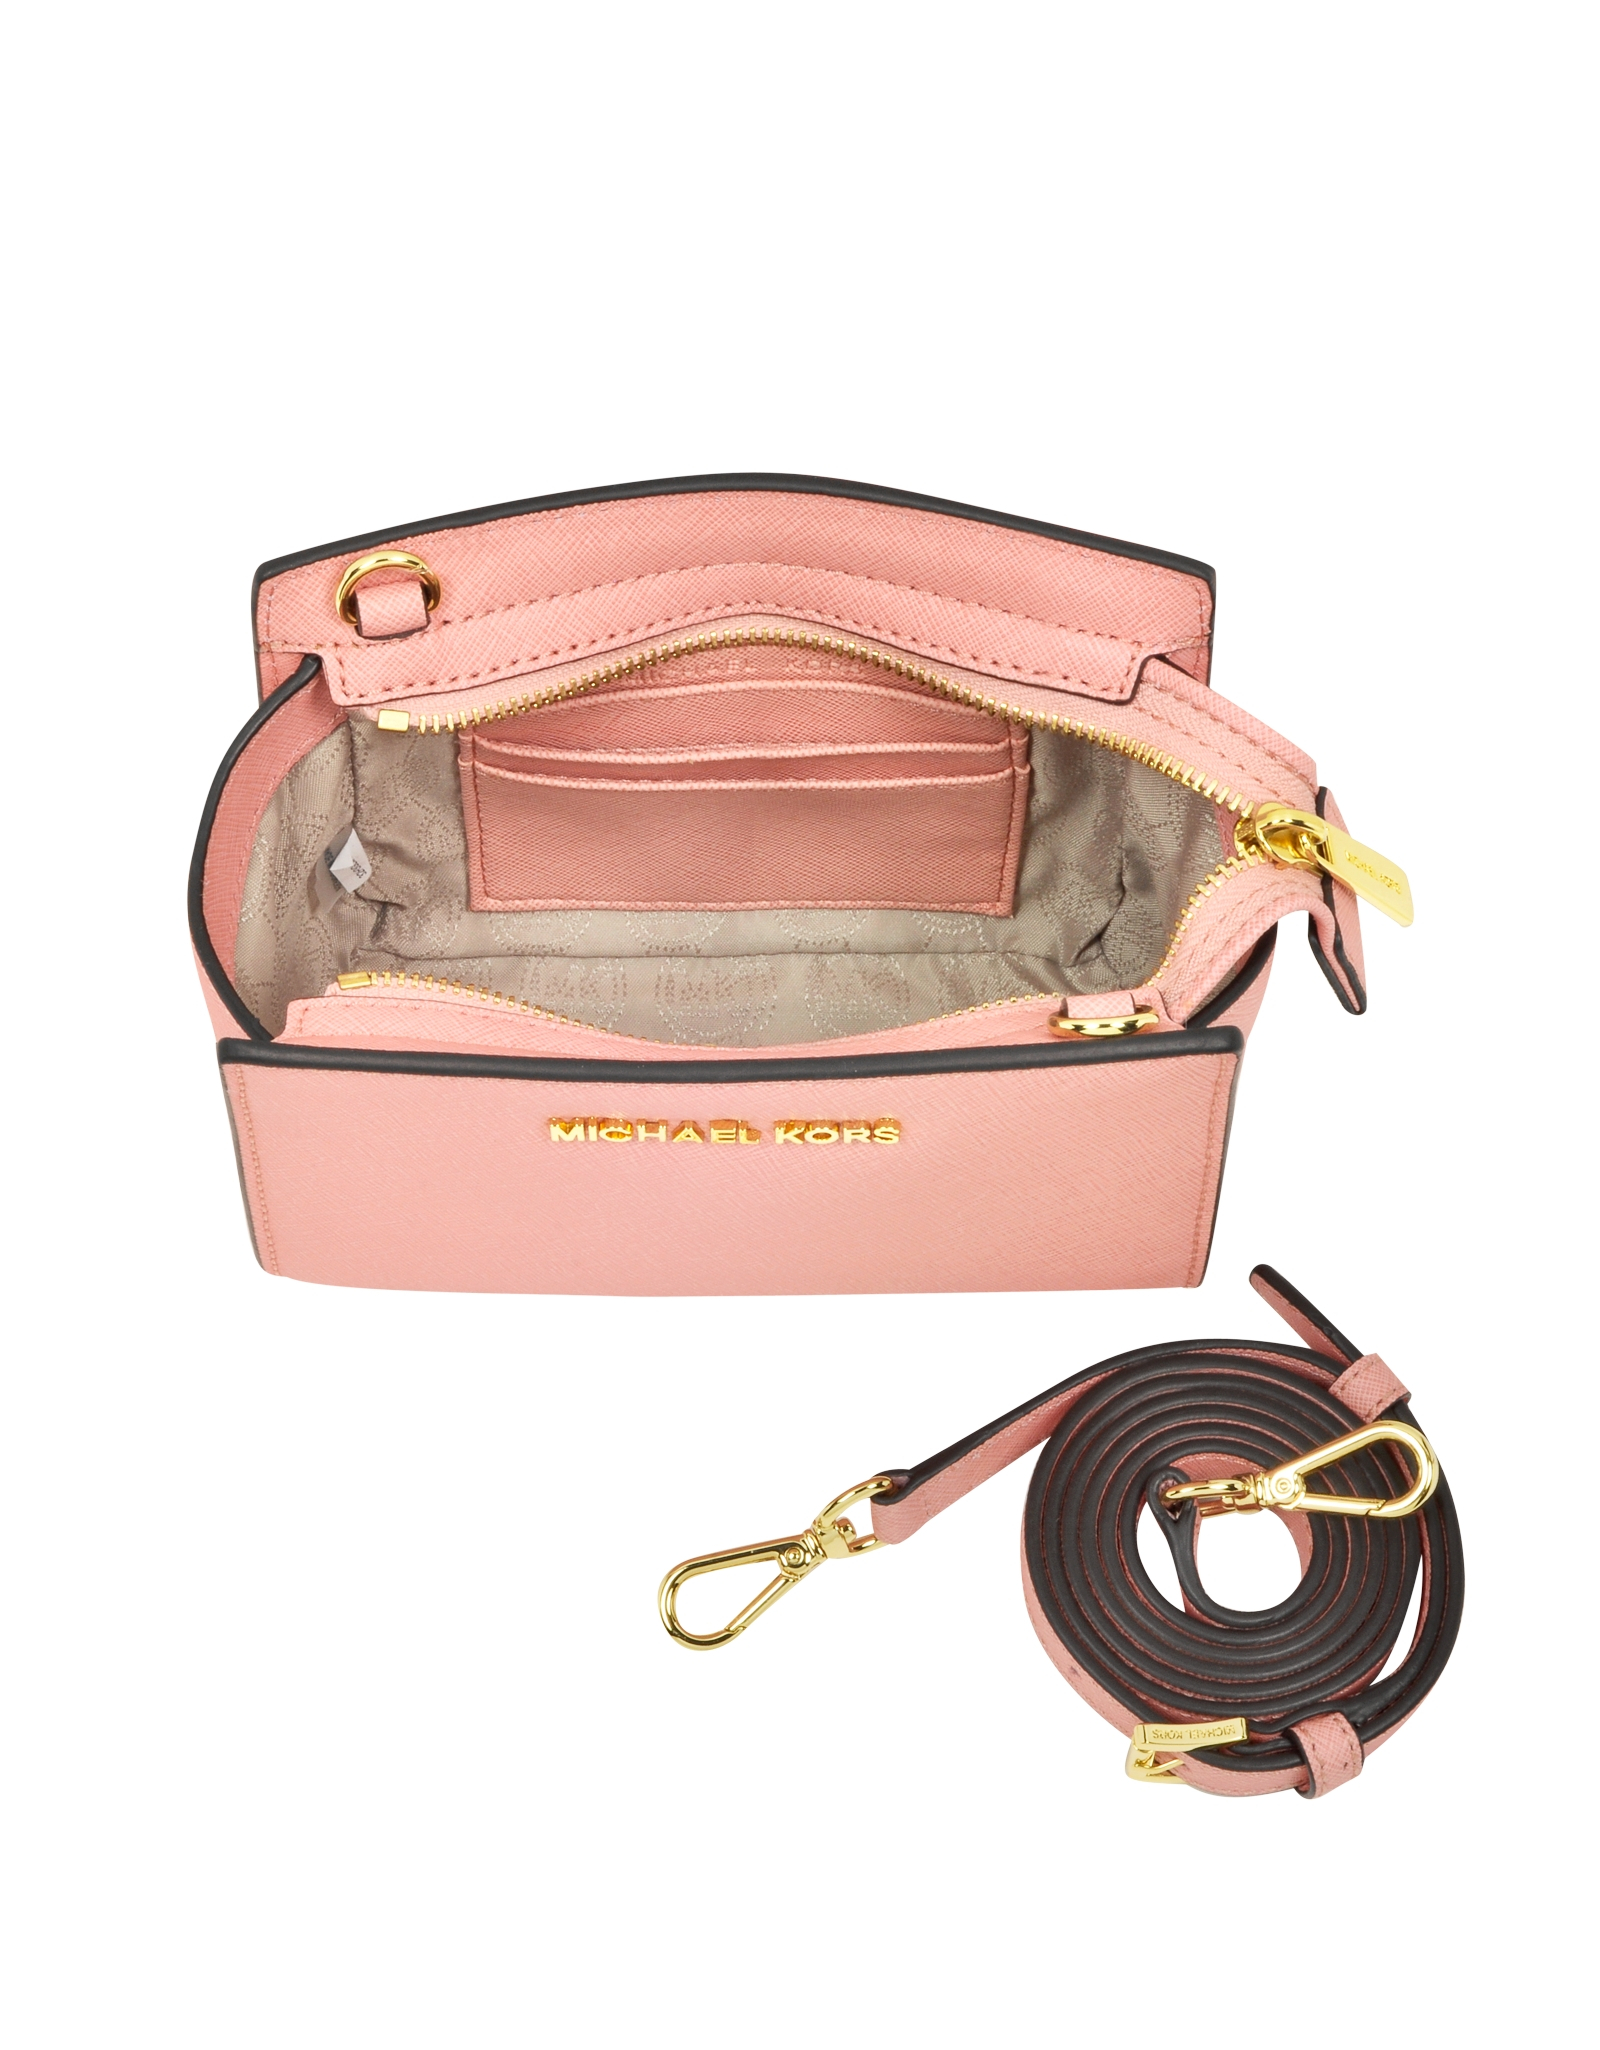 8f1c5f49bcd7 Michael Kors Selma Saffiano Leather Mini Messenger in Pink - Lyst